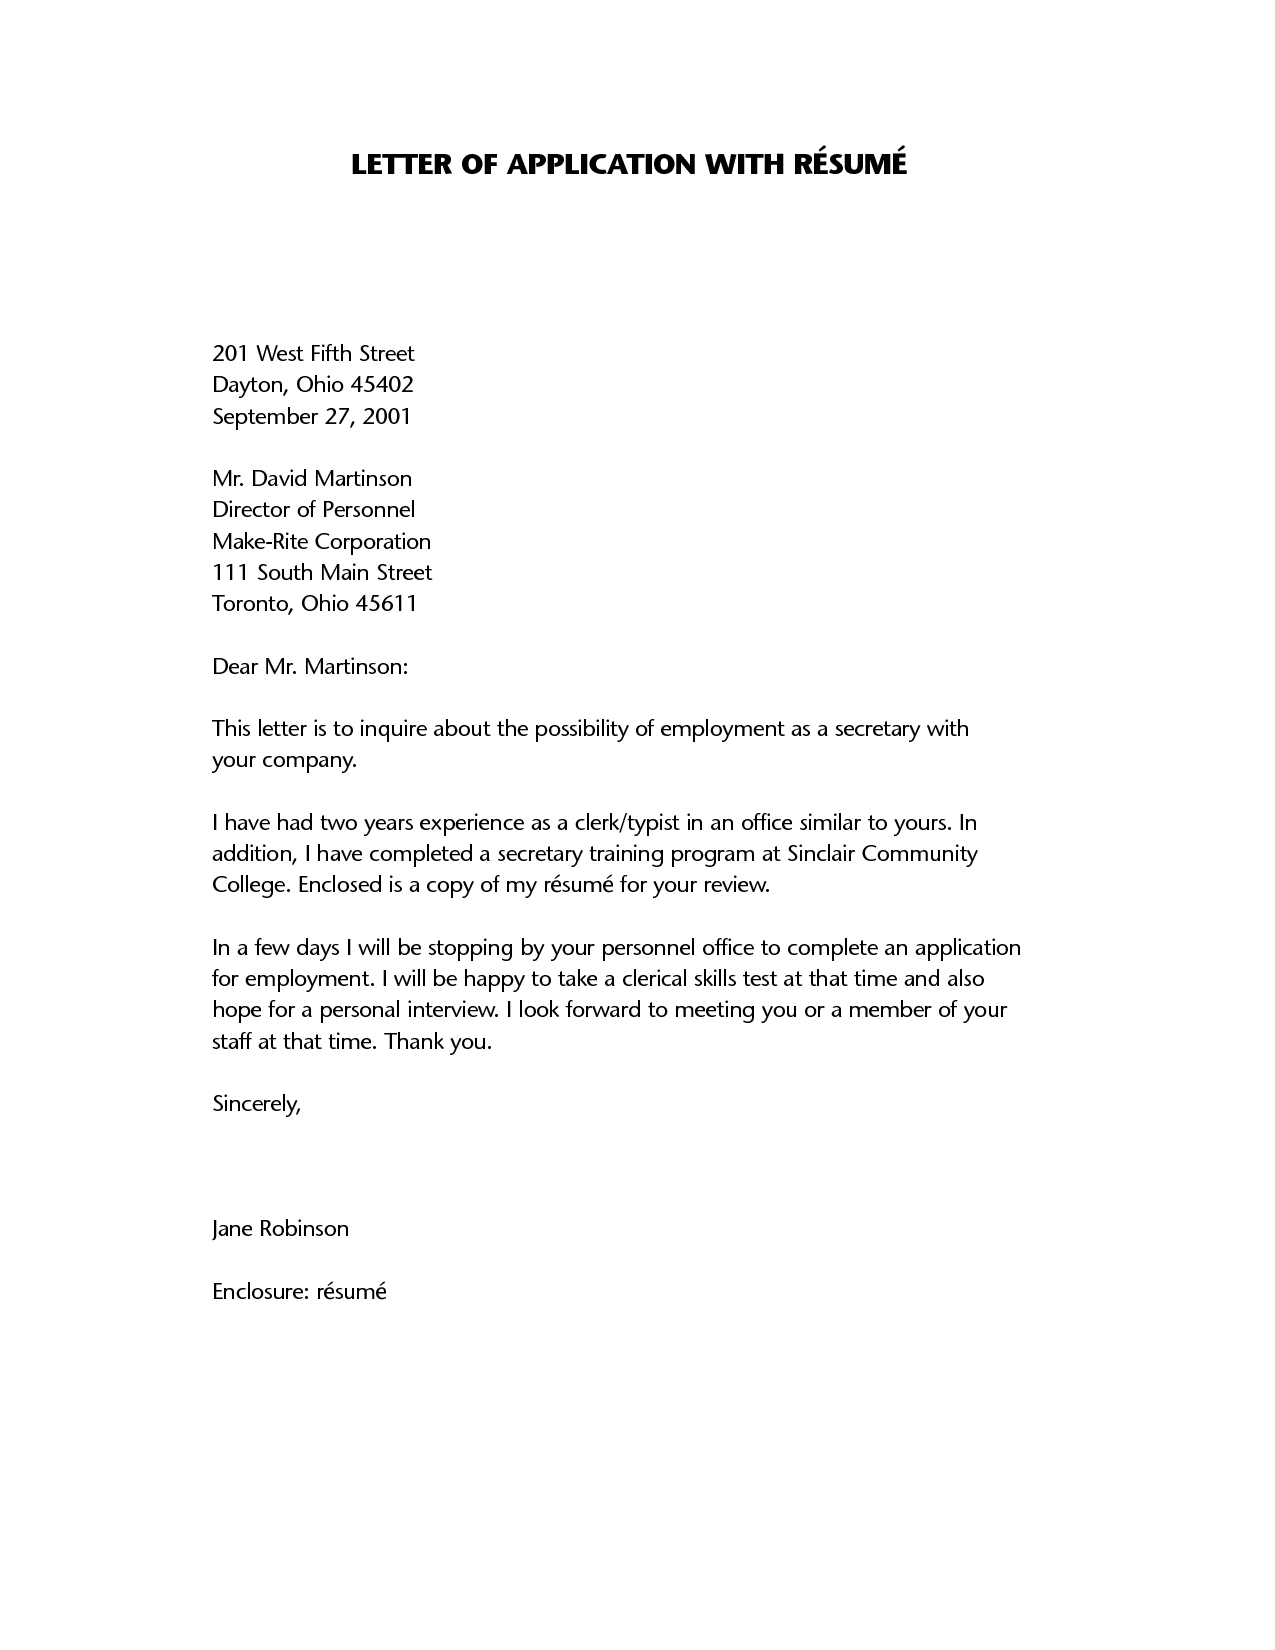 resume application letter a letter of application is a document sent with your resume to - Application Letter And Resume